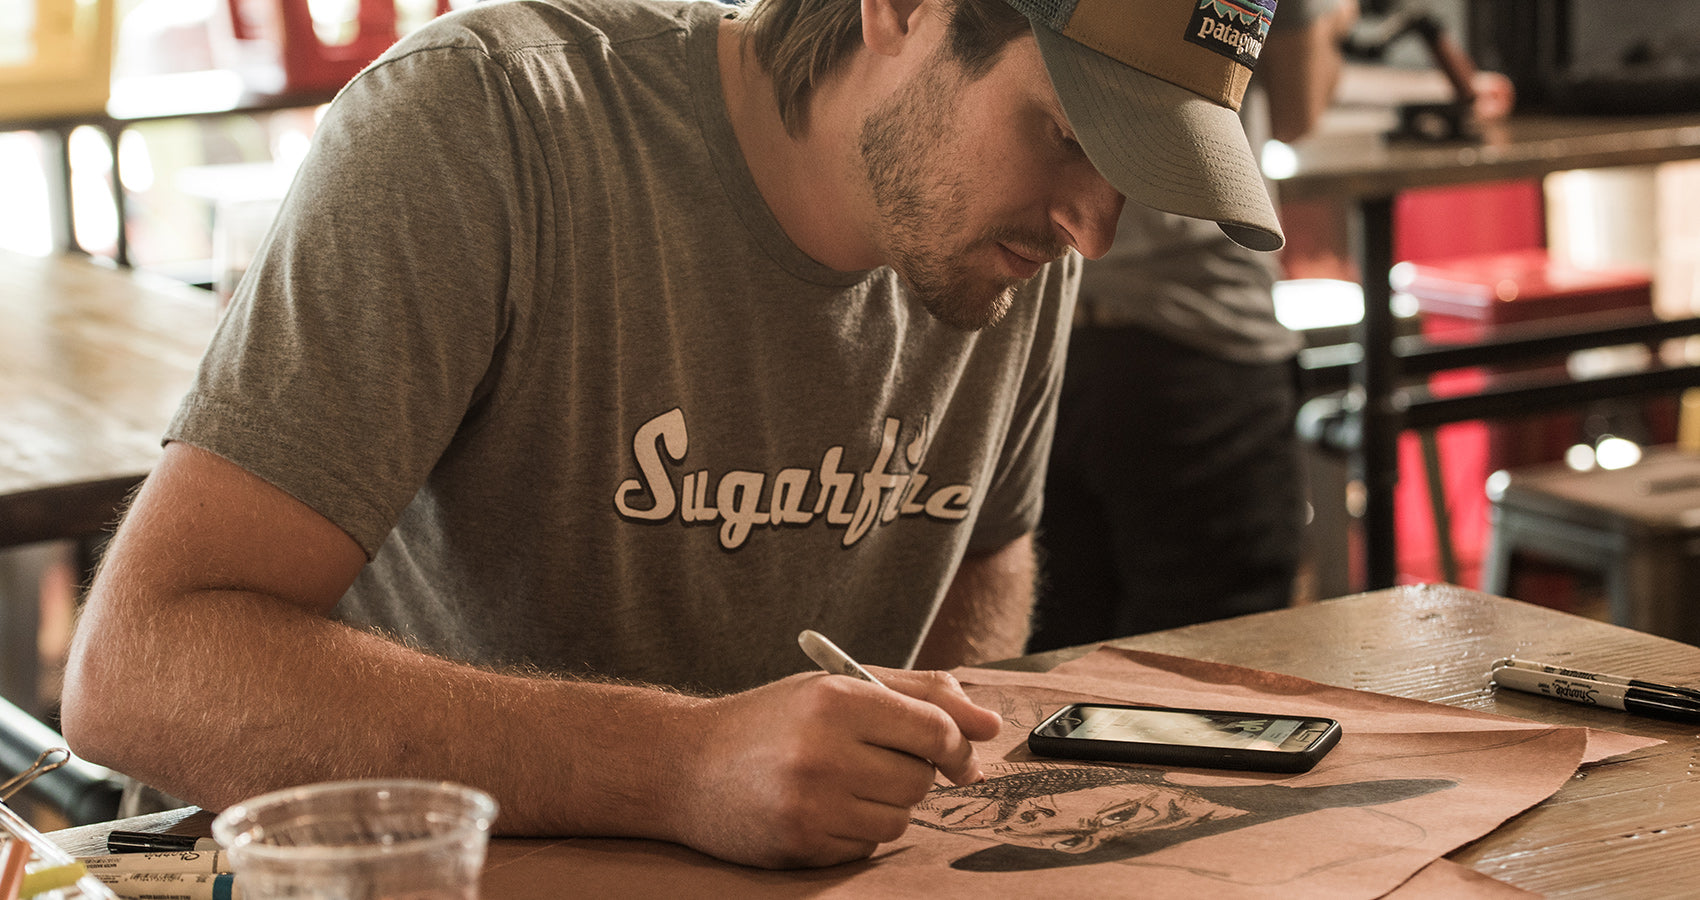 matt martin drawing at the table